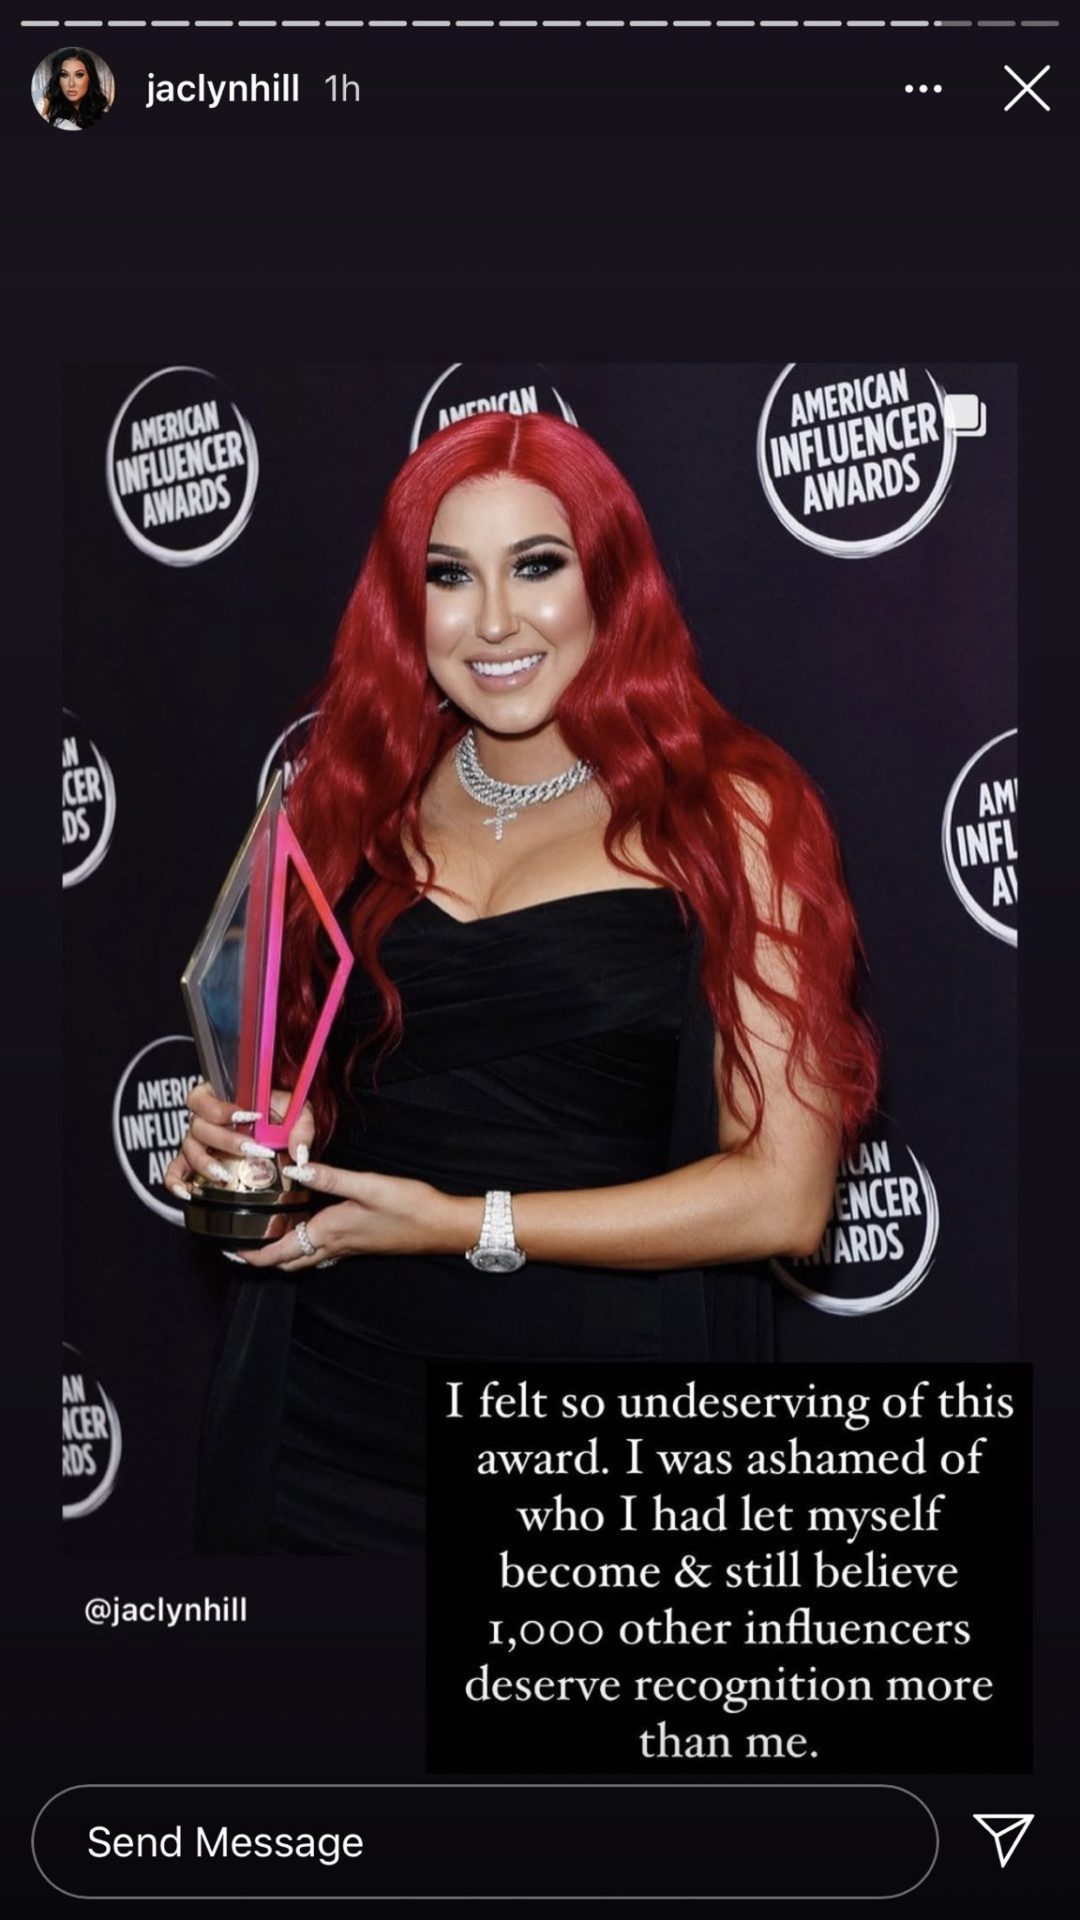 Jaclyn Hill poses with her trophy at the Influencer Awards.